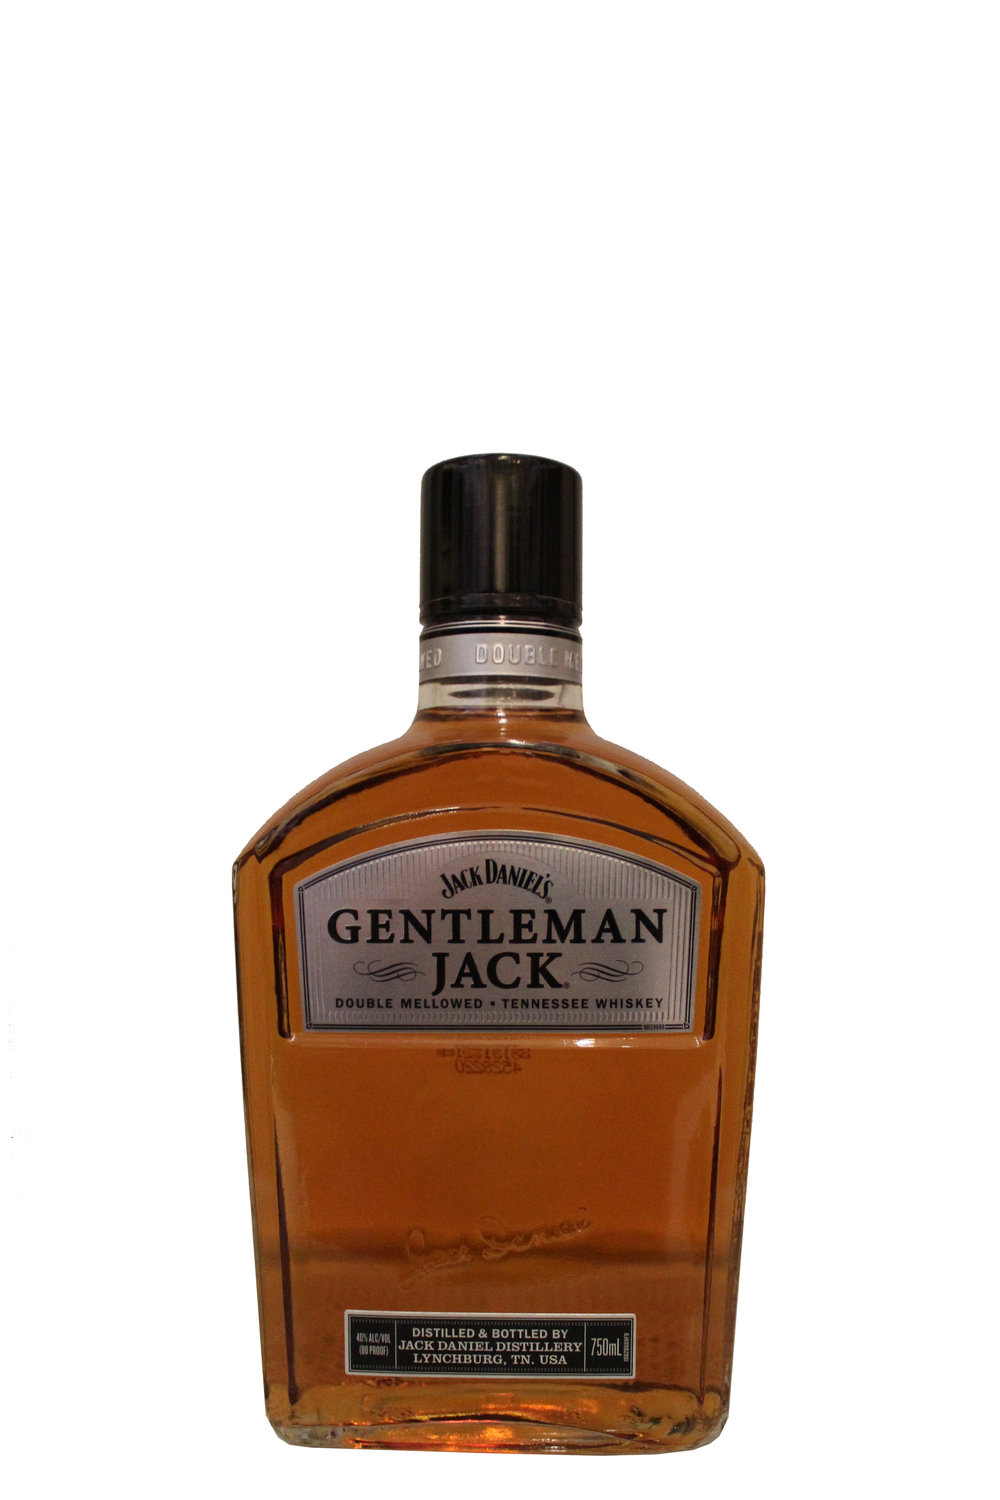 Double Mellowed Whiskey  Gentleman Jack,  Tennessee